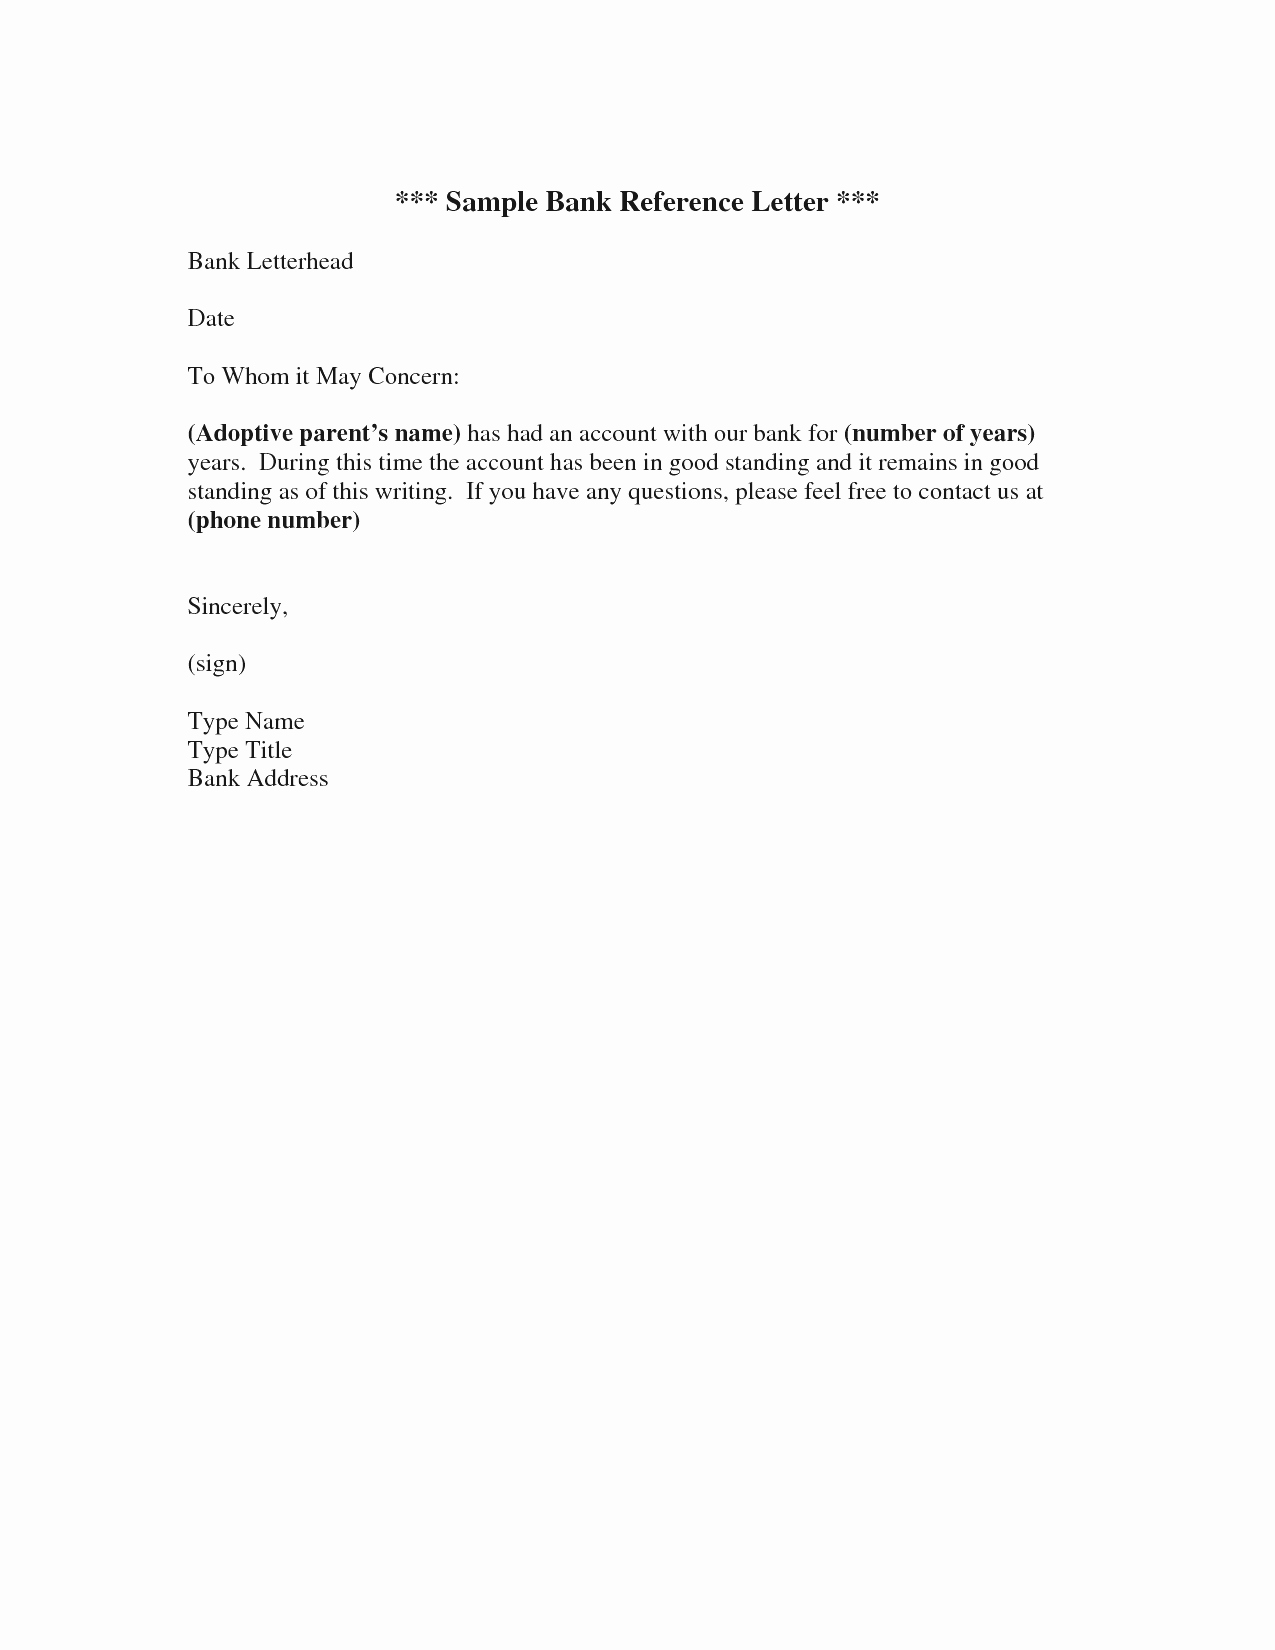 Reference Letter for Employment Samples Fresh Business Reference Letter Template Example Mughals